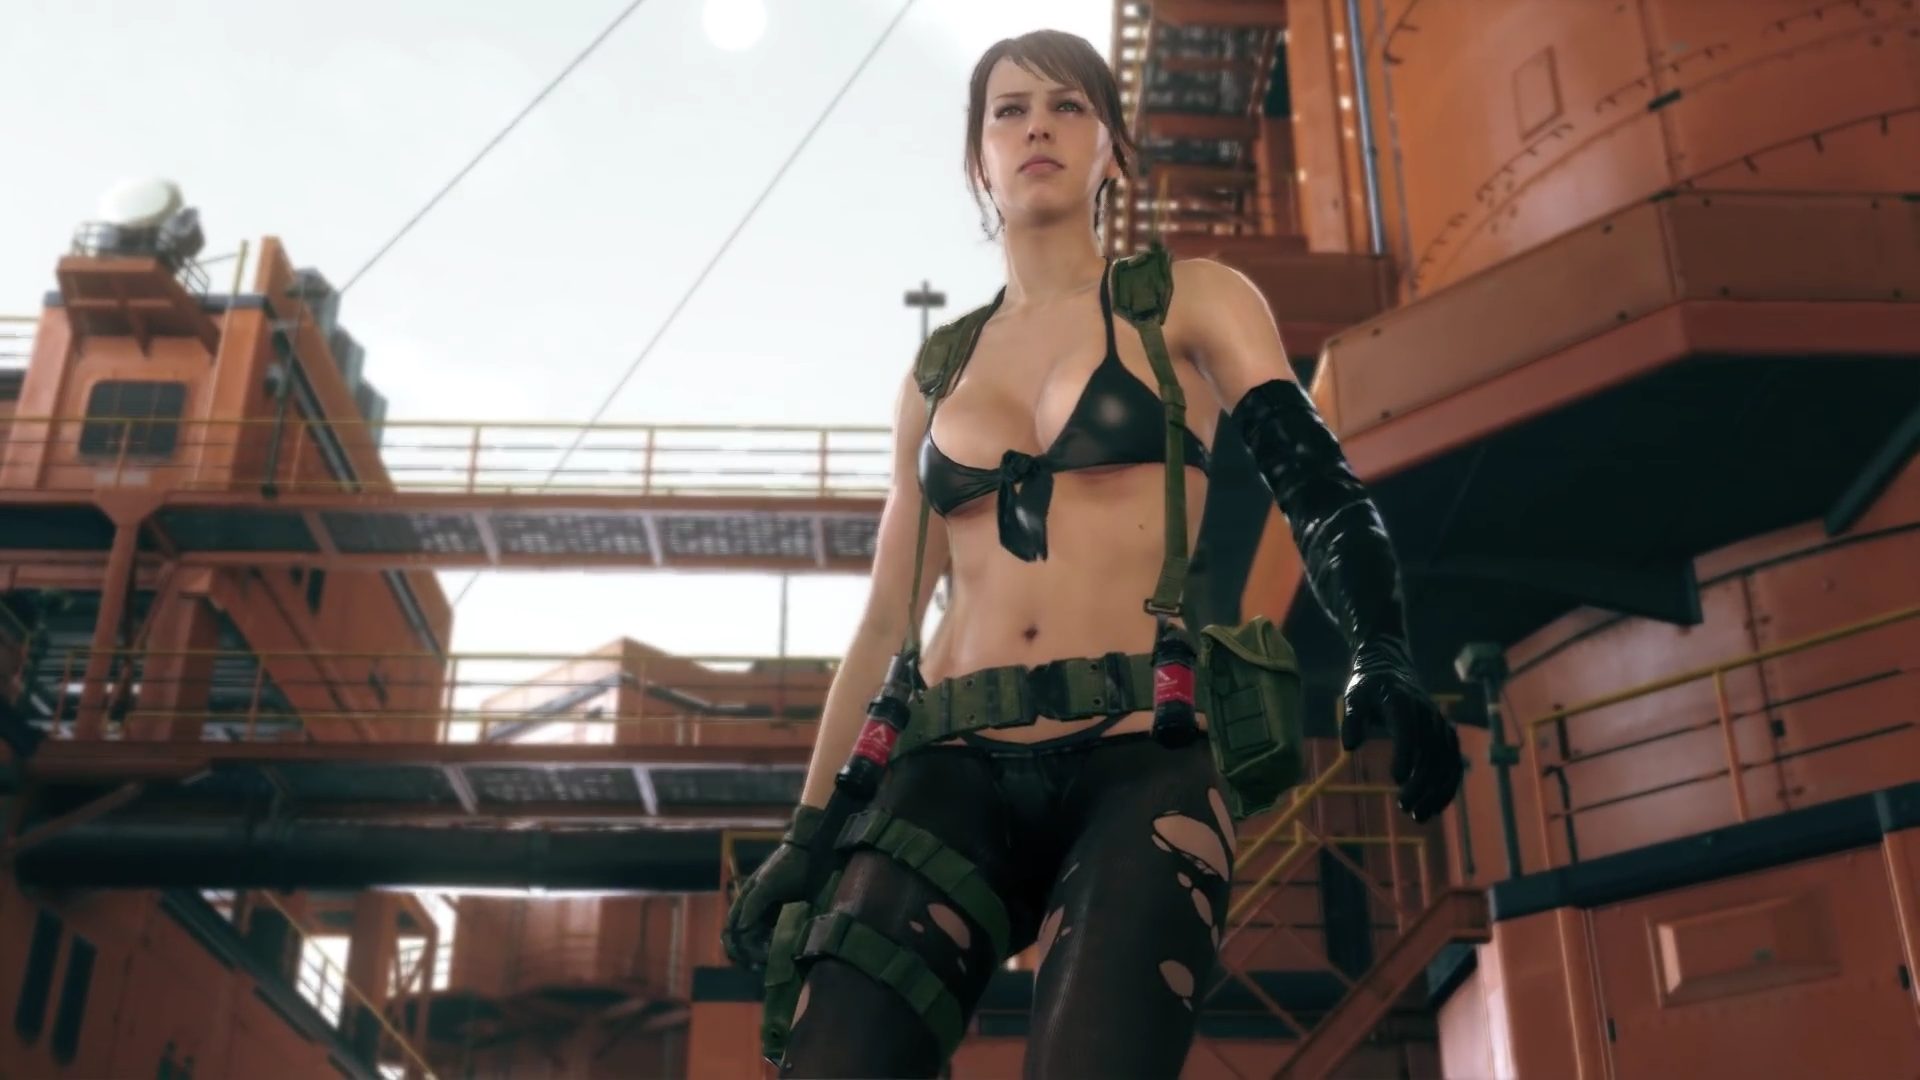 Metal Gear Solid 5 10 Sexy Pictures Of Quiet Gamers Decide